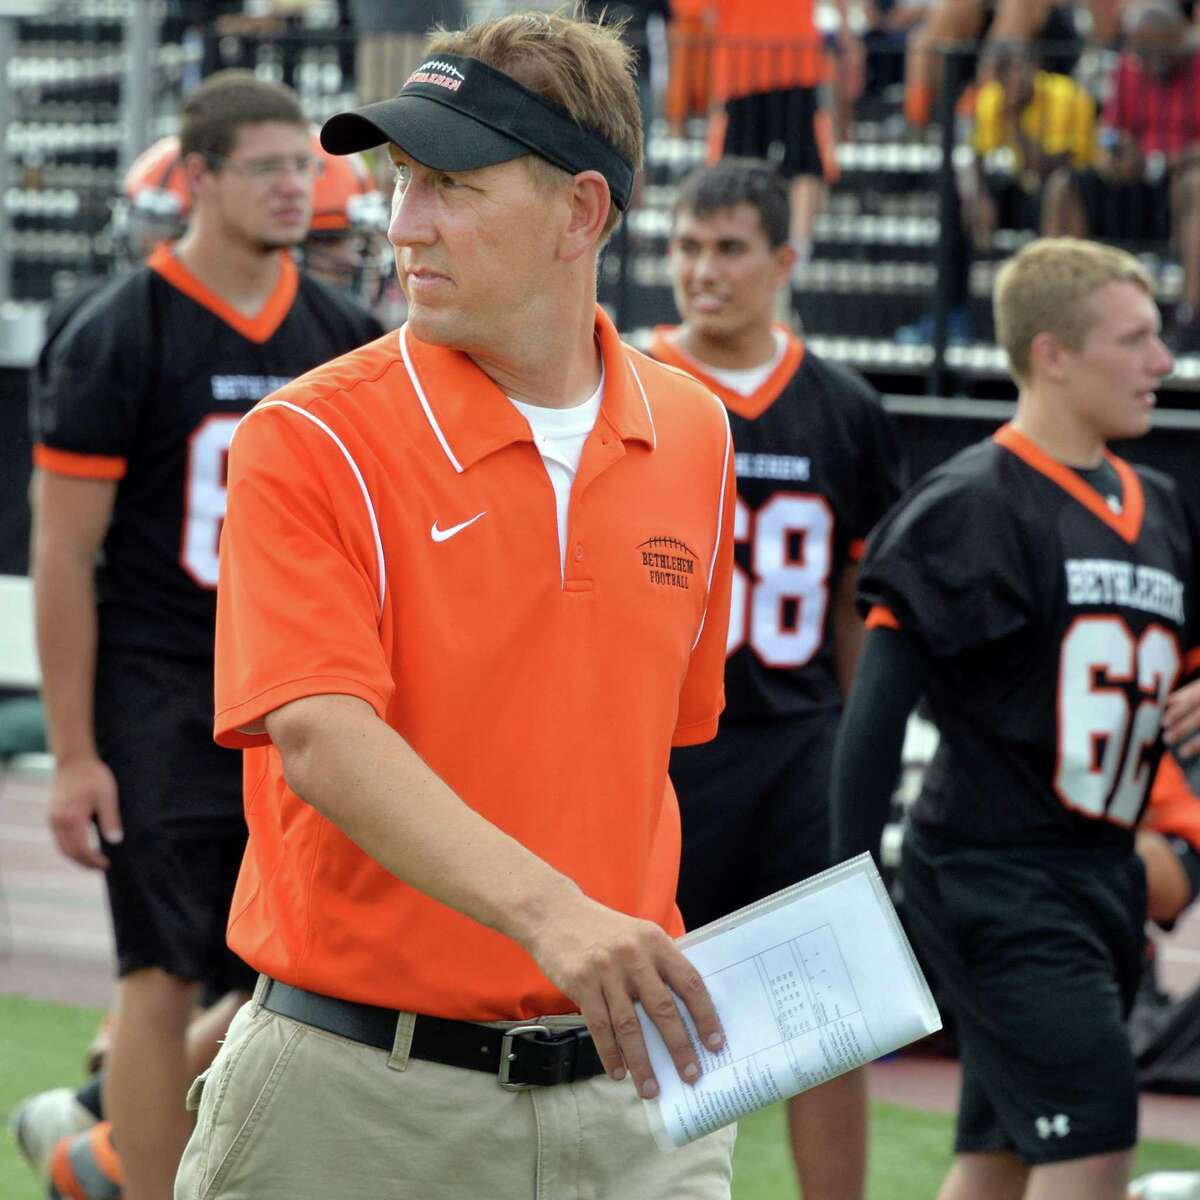 Bethlehem head coach Rick Leach on the sidelines during Saturday's game against Albany High Sept. 6, 2014, at Union College's Frank Bailey Field in Schenectady,NY. (John Carl D'Annibale / Times Union)